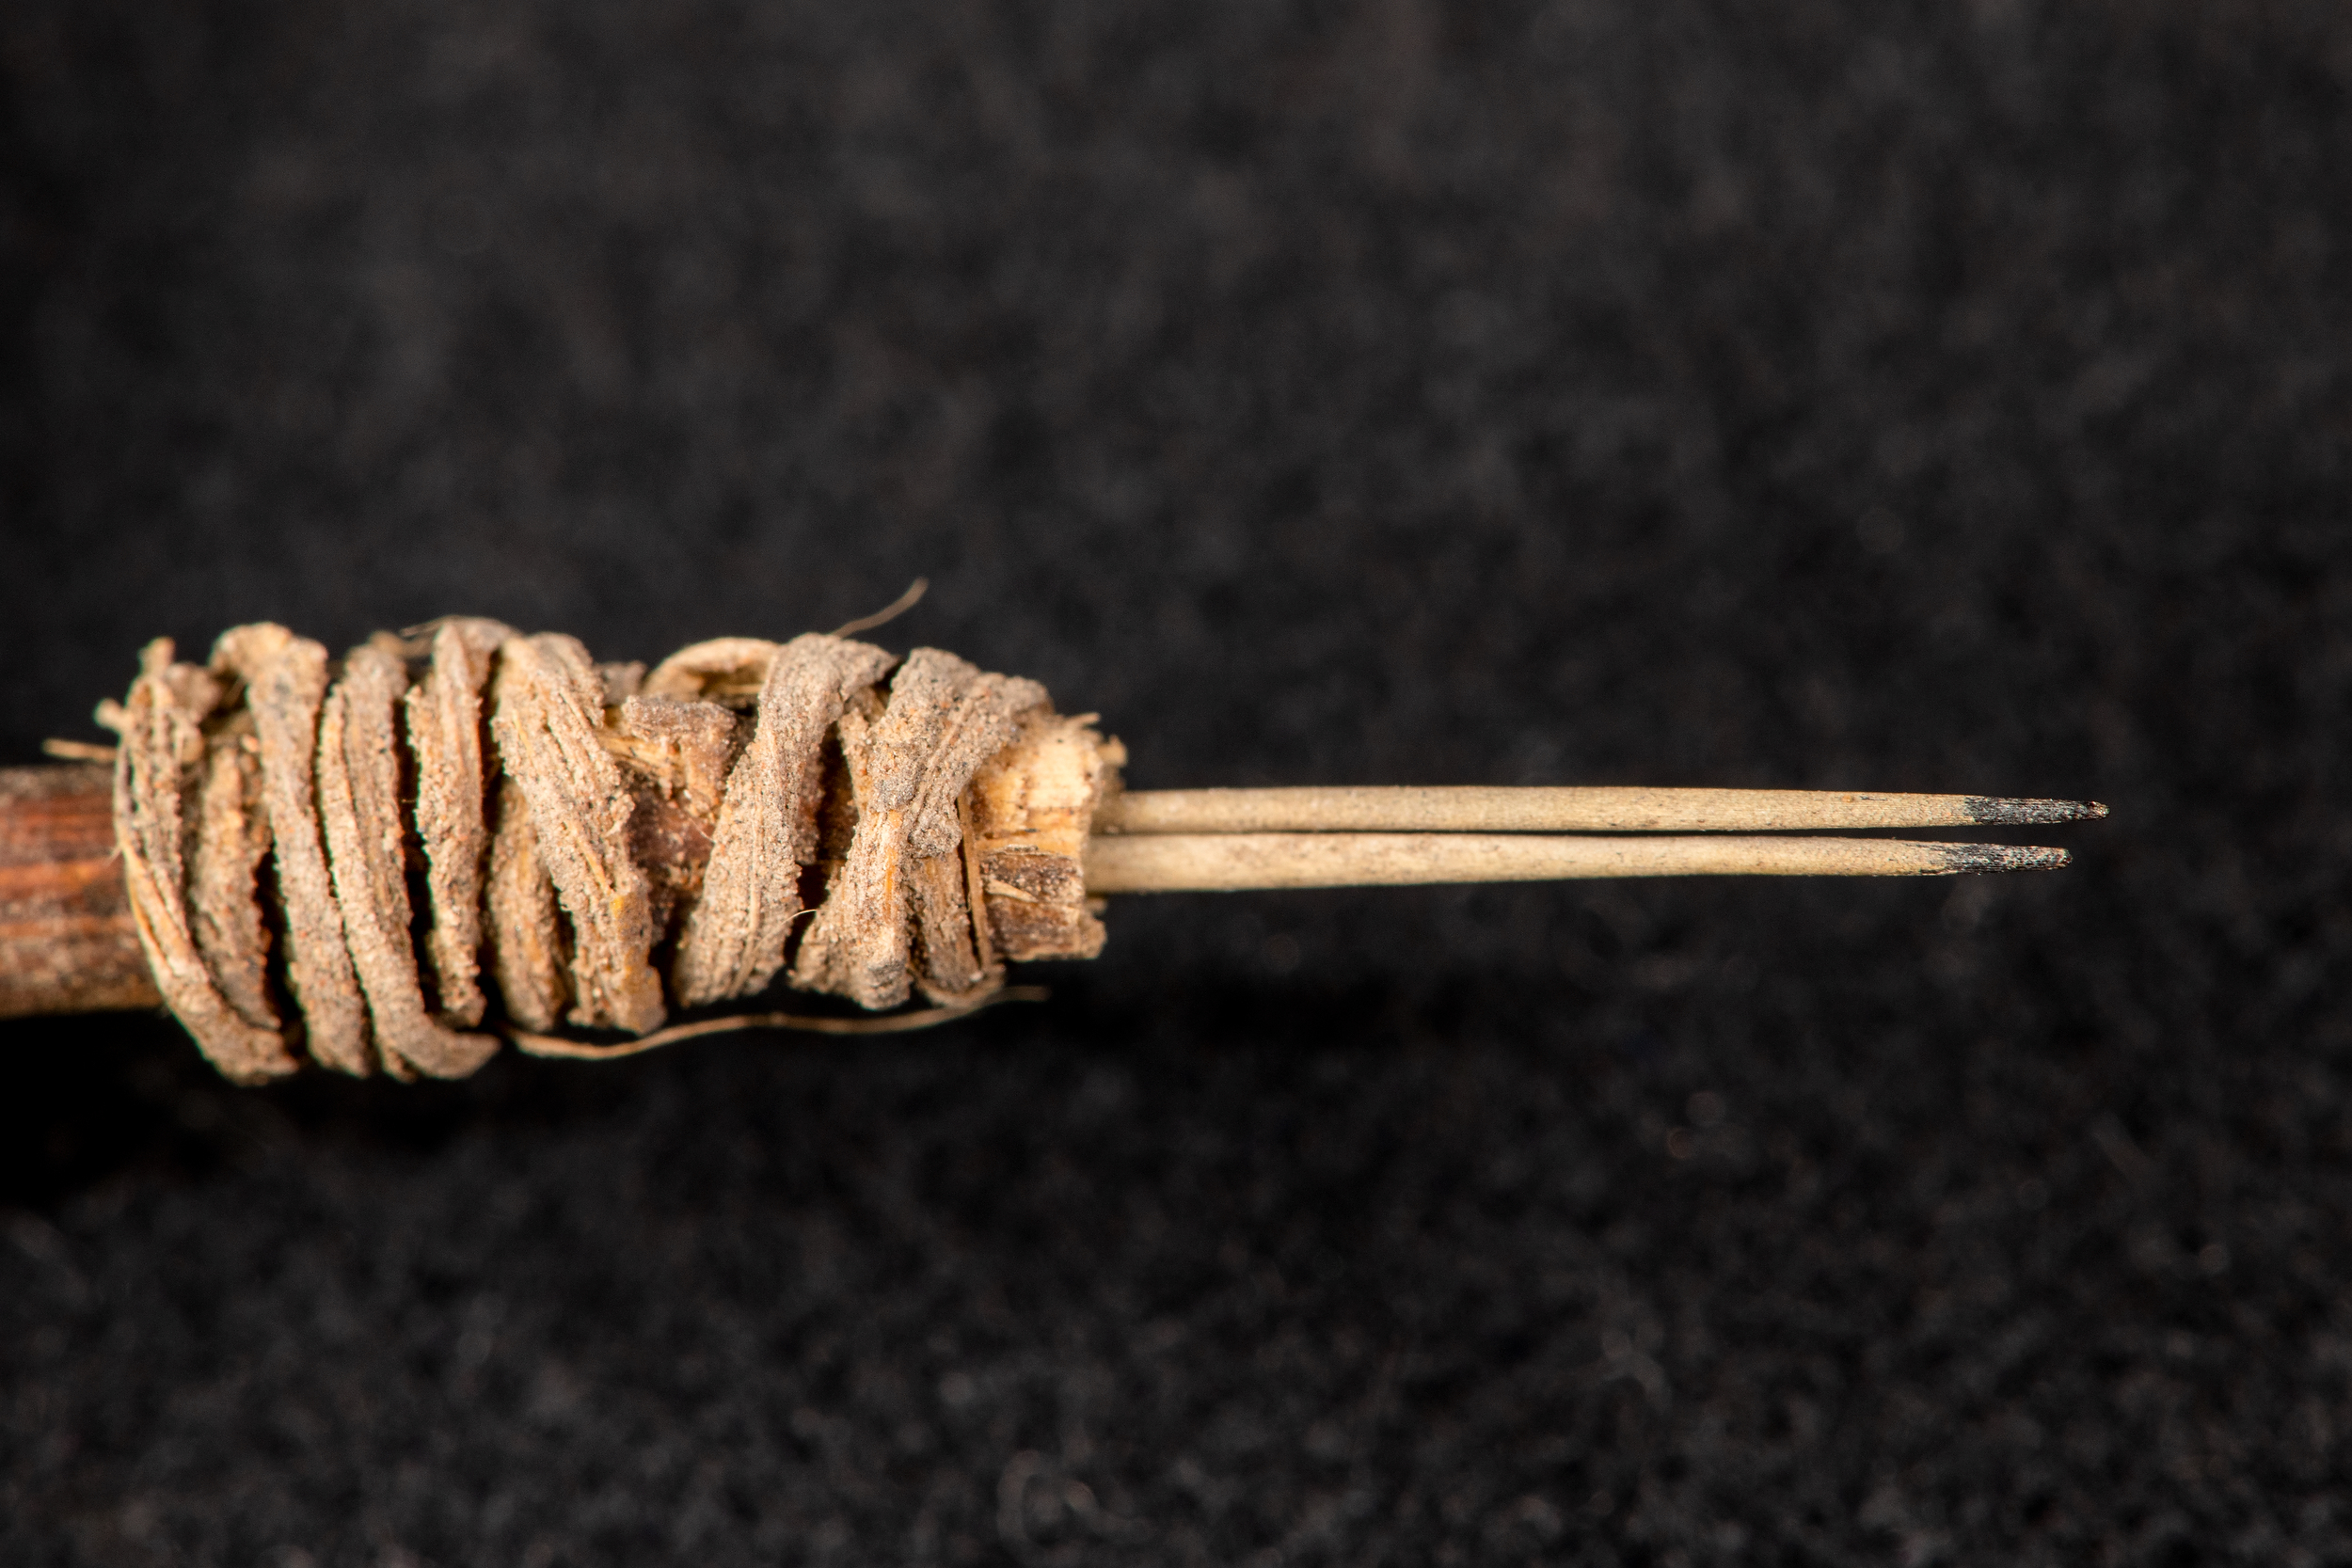 Closeup of 2,000-year-old cactus spine tattoo tool.